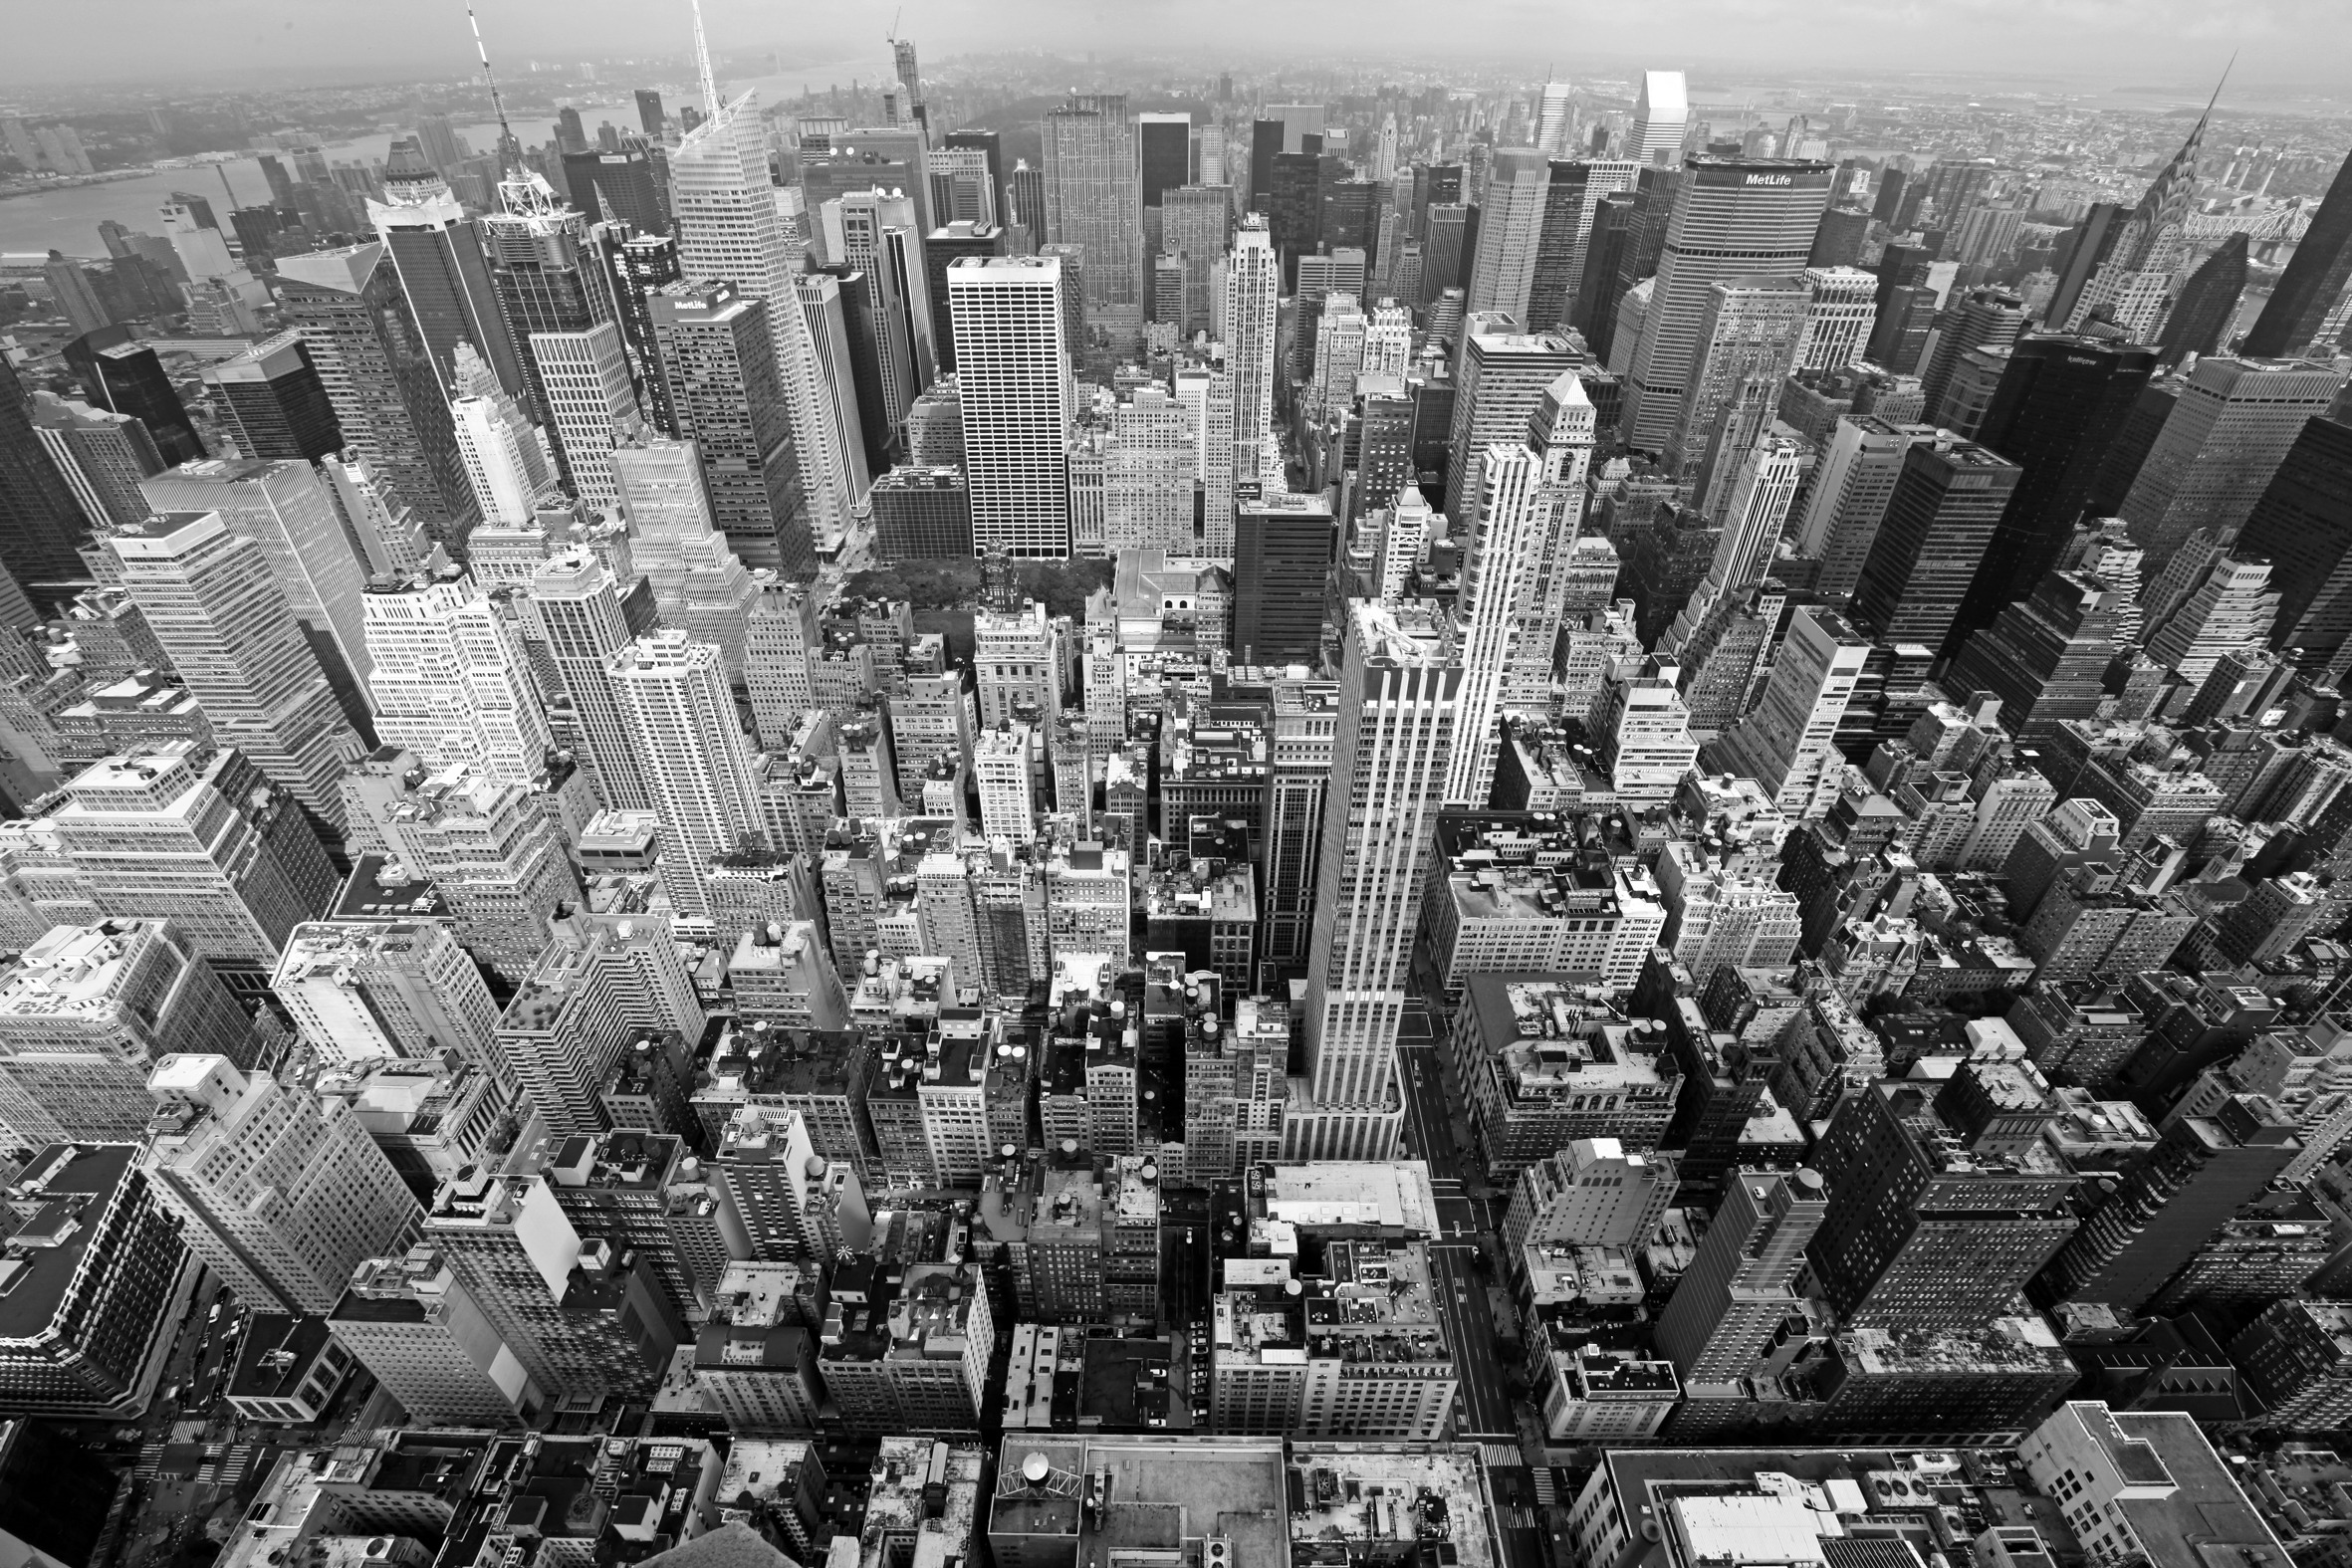 New York city aerial view in black and white